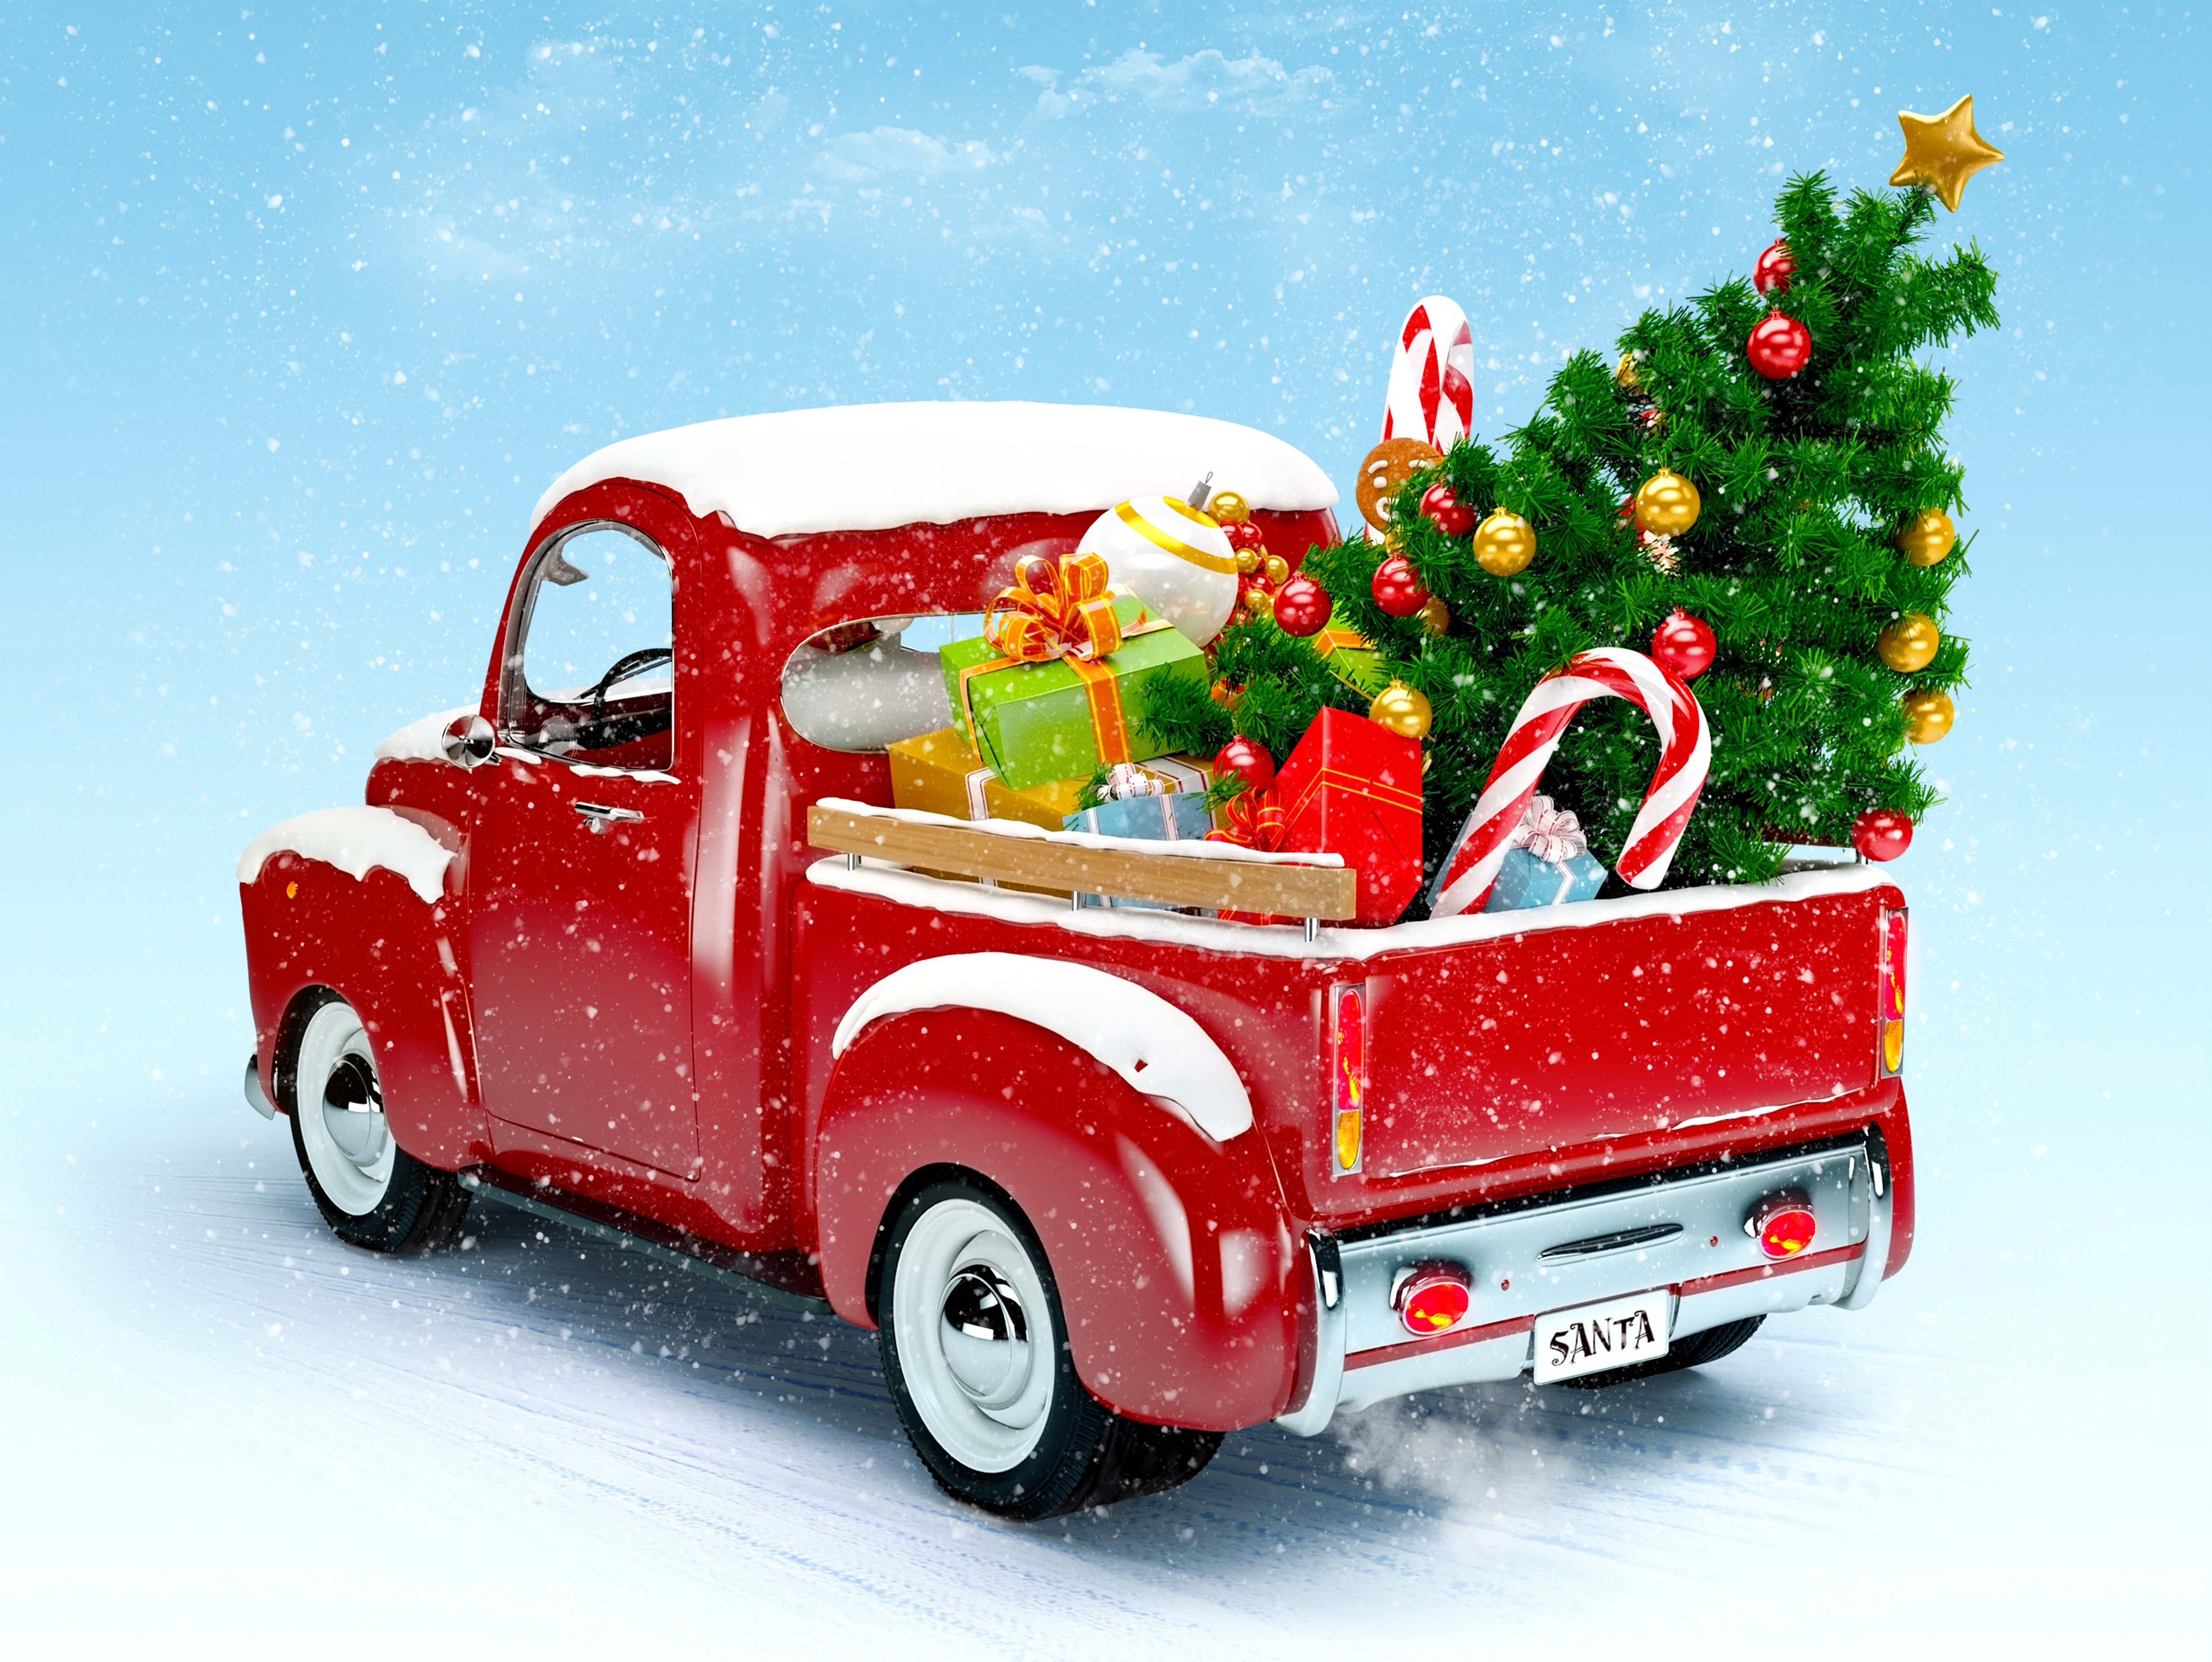 Christmas new year van truck sut red snow tree lovely wallpaper | 4990x3750 | 566614 | WallpaperUP